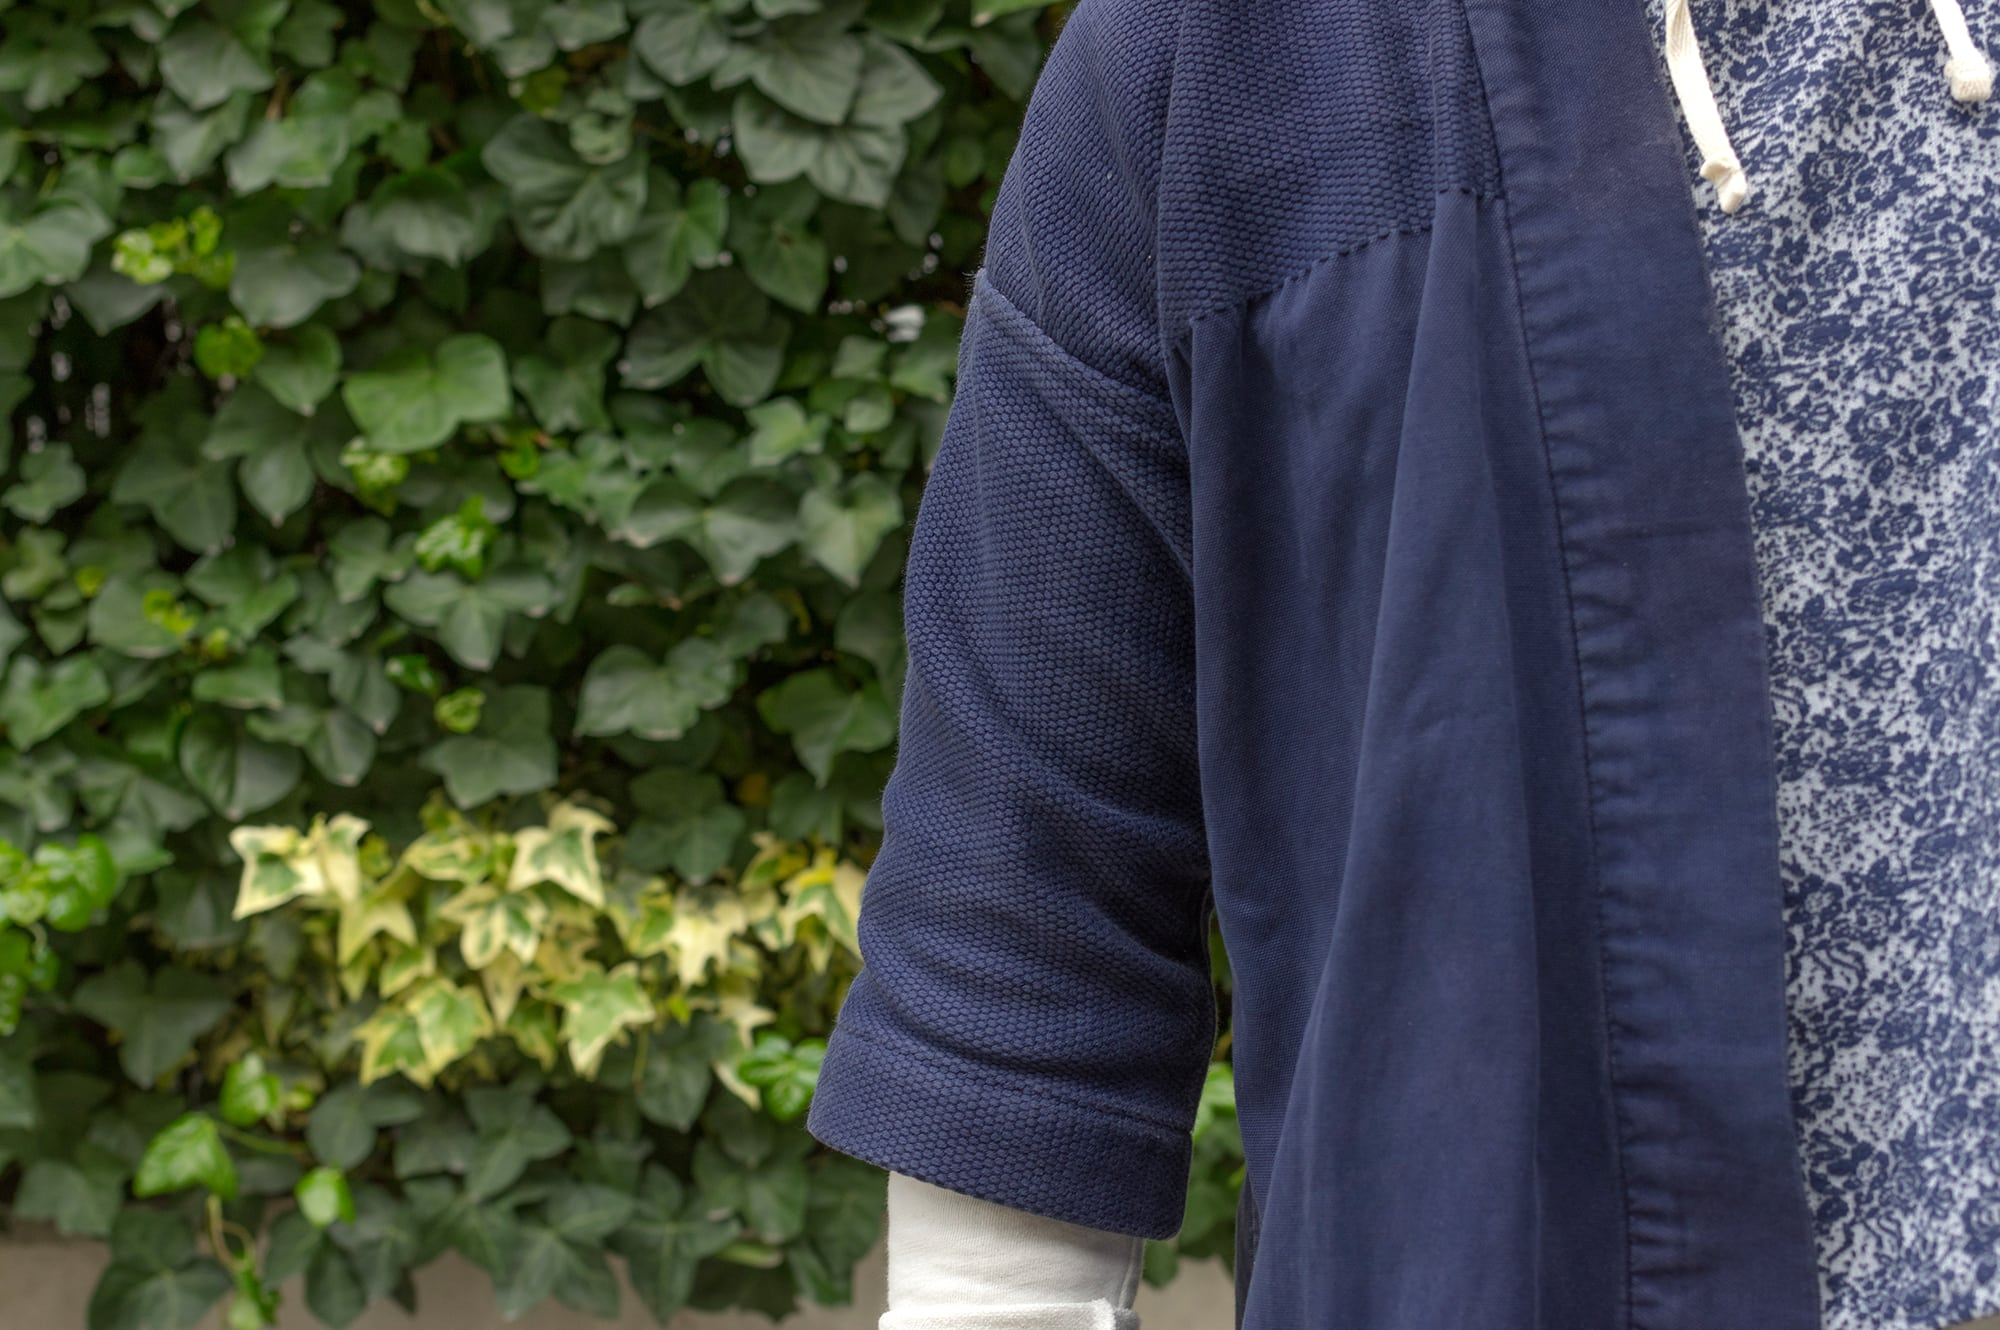 Visvim Sanjuro Kimono noragi and Engineered Garments hooded interliner in street heritage outfit